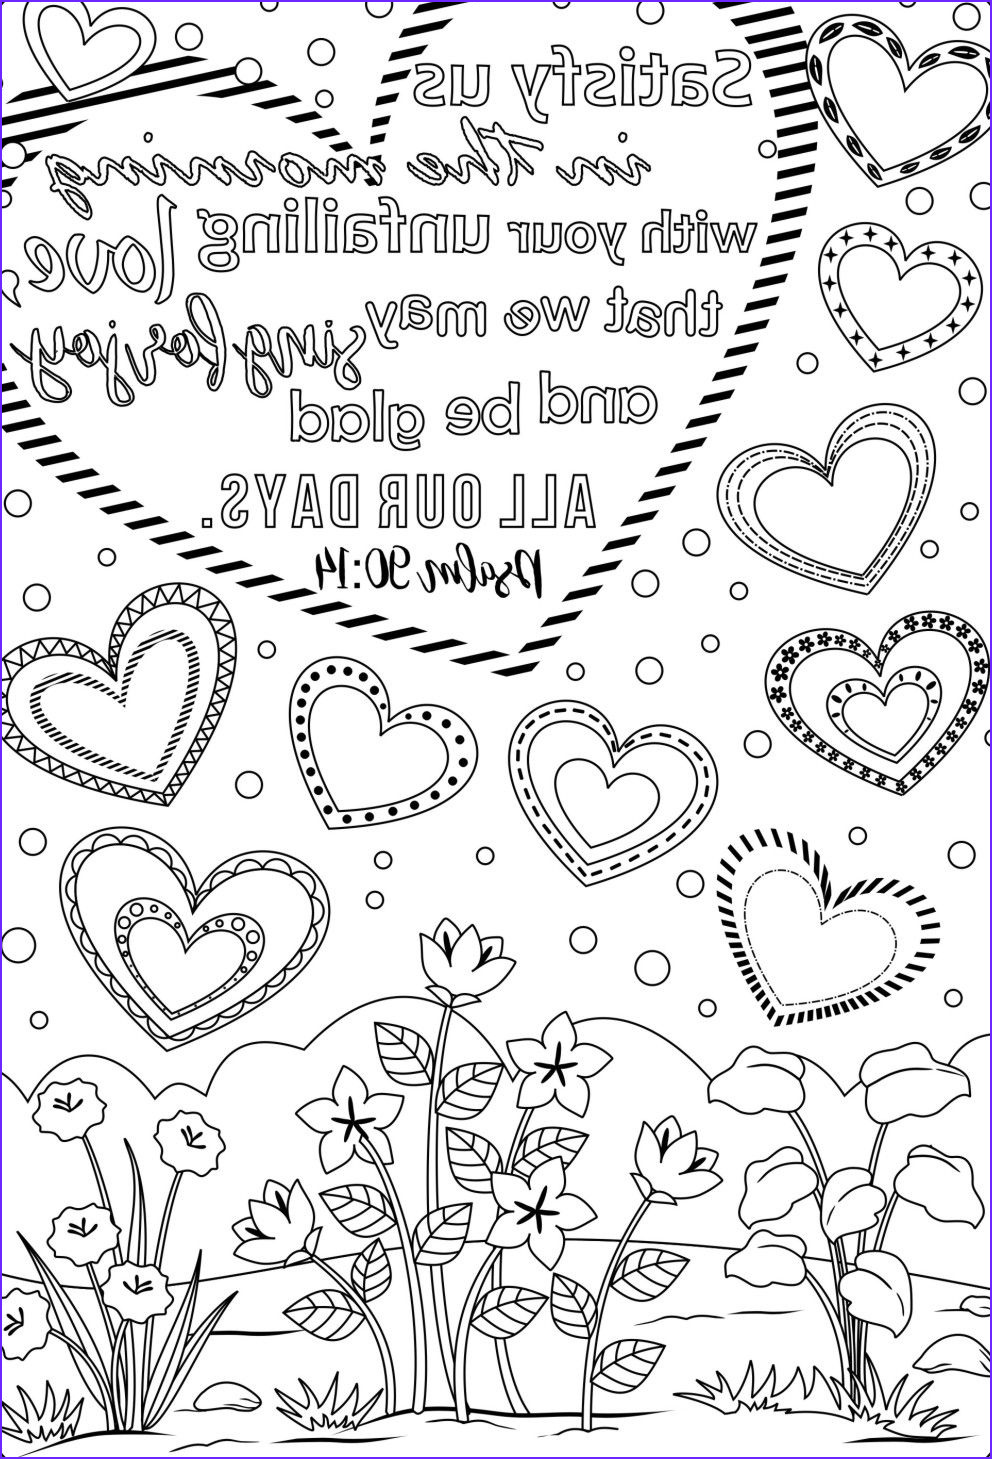 Bible Verse Coloring Pages for Adults Inspirational Images Three Bible Verse Coloring Pages for Adults Printable